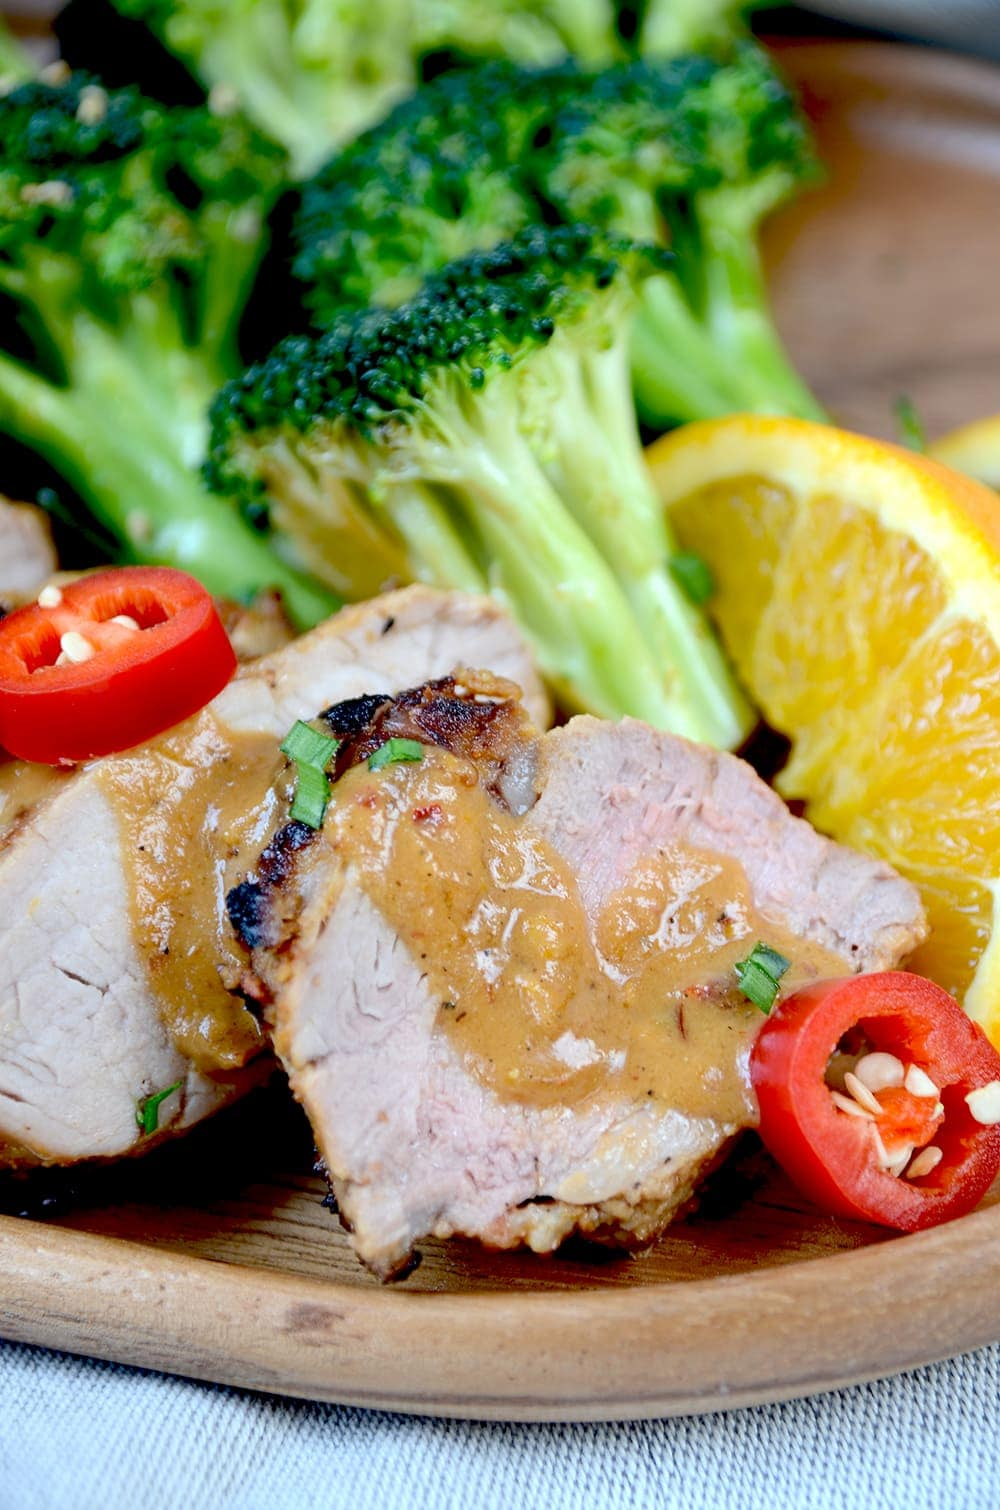 Pork tenderloin covered in peanut sauce